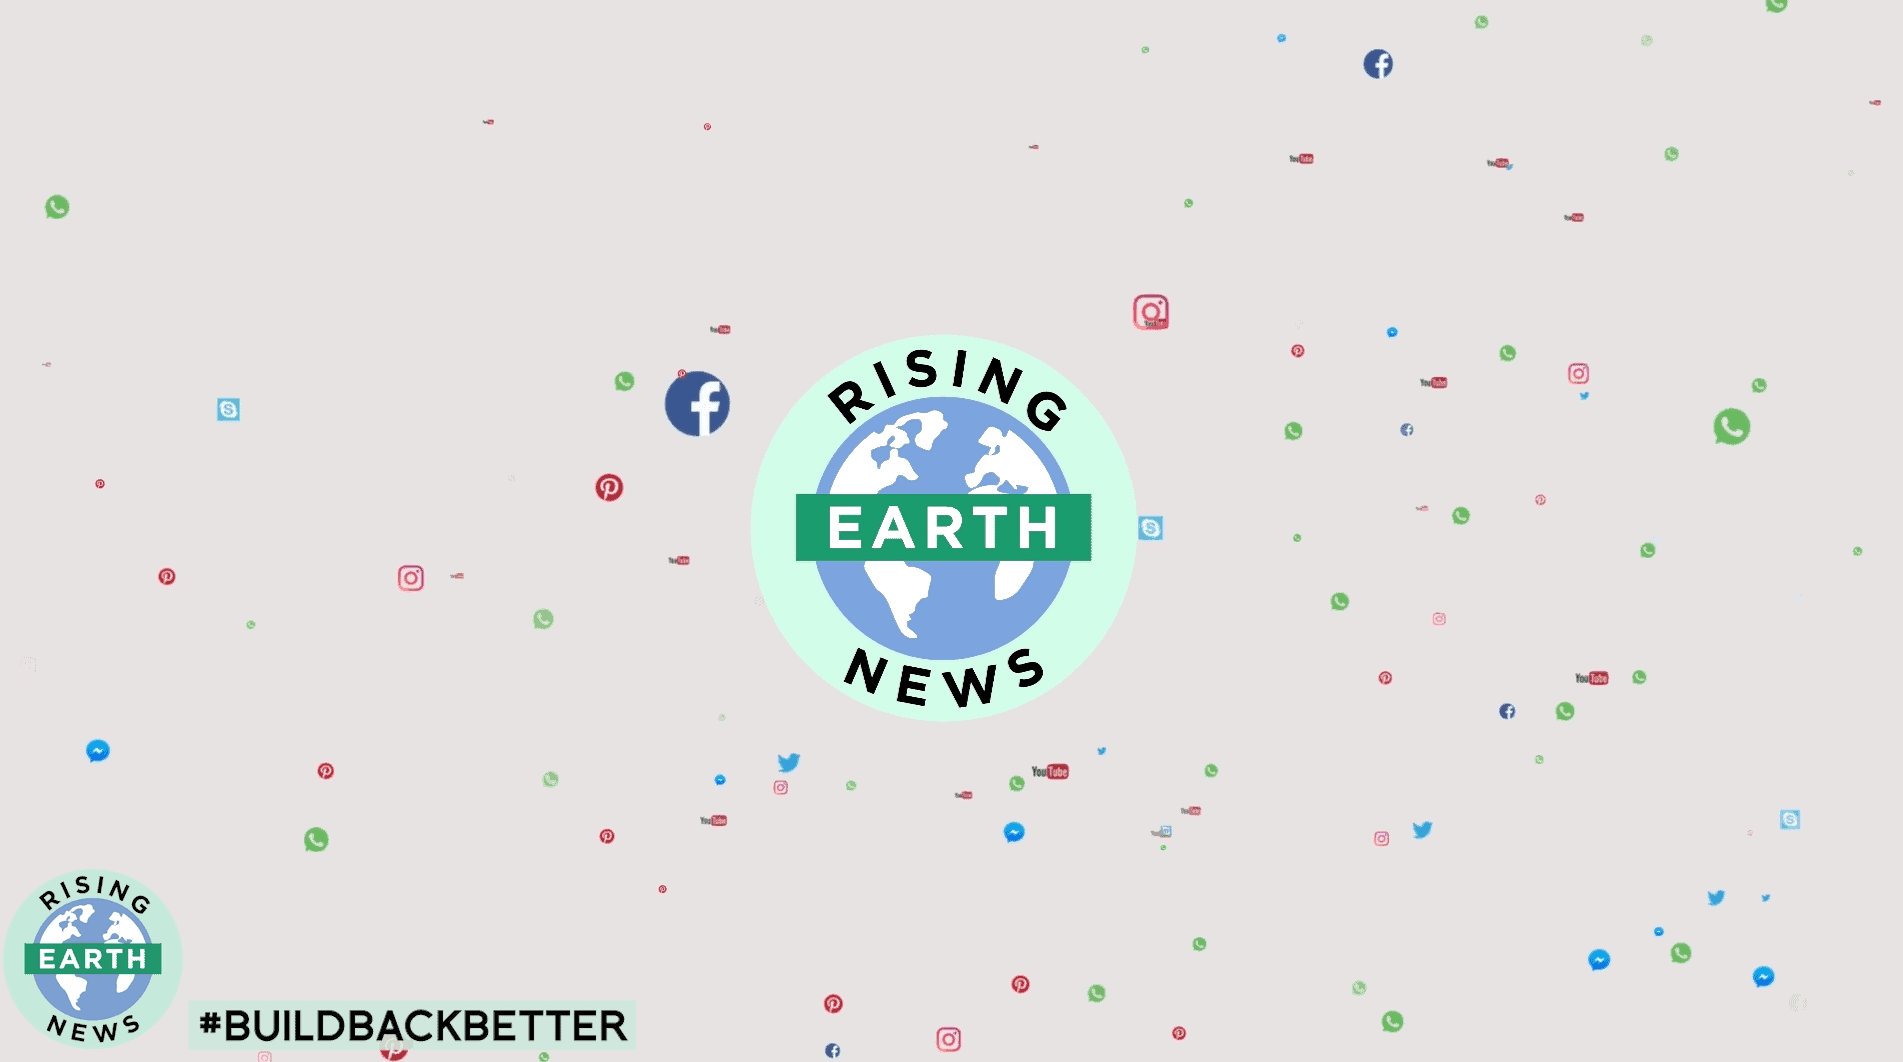 Rising-Earth-News